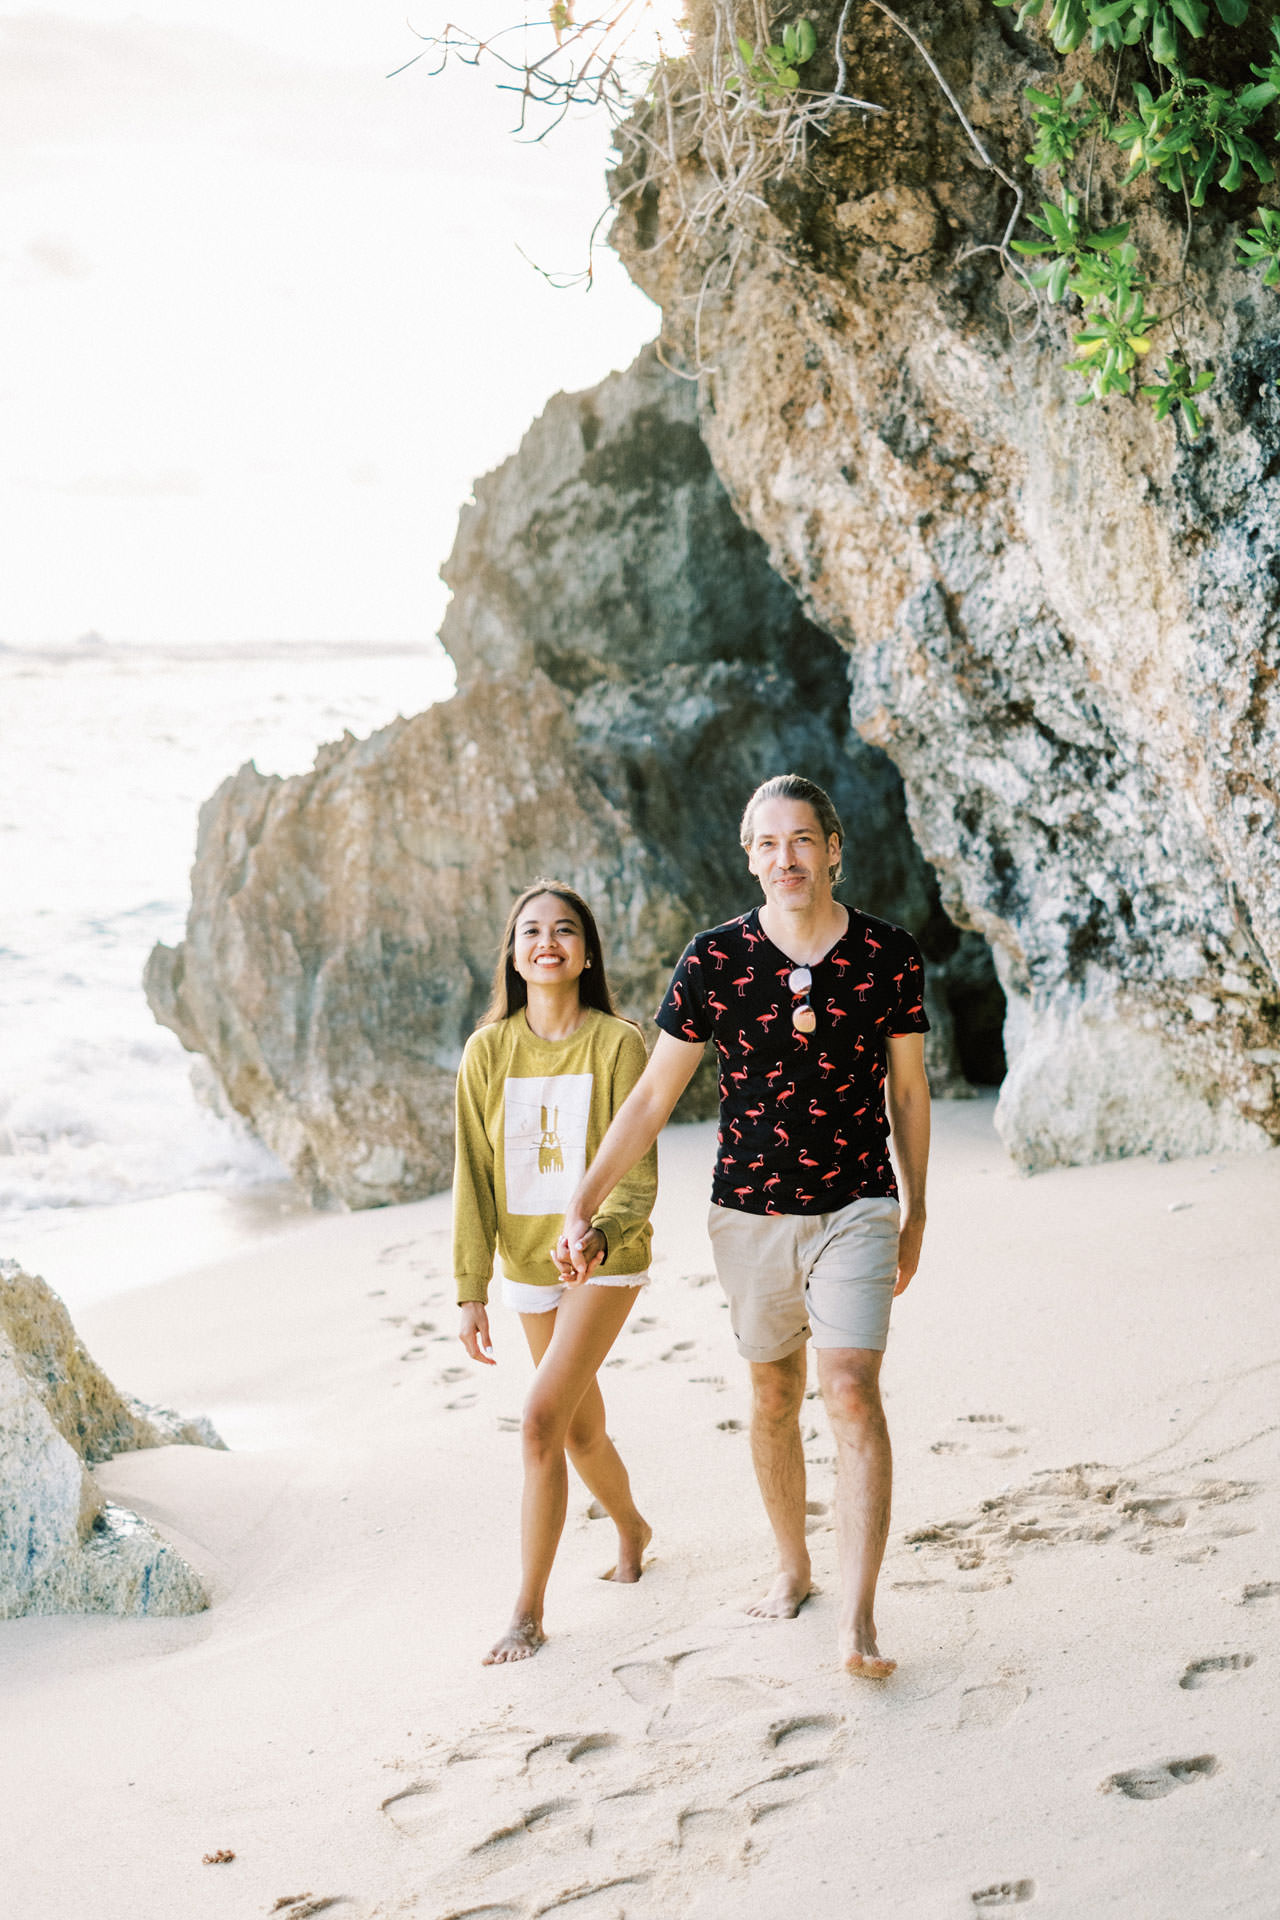 Bali's Beach Marriage Proposal with a Proposal Video! 28